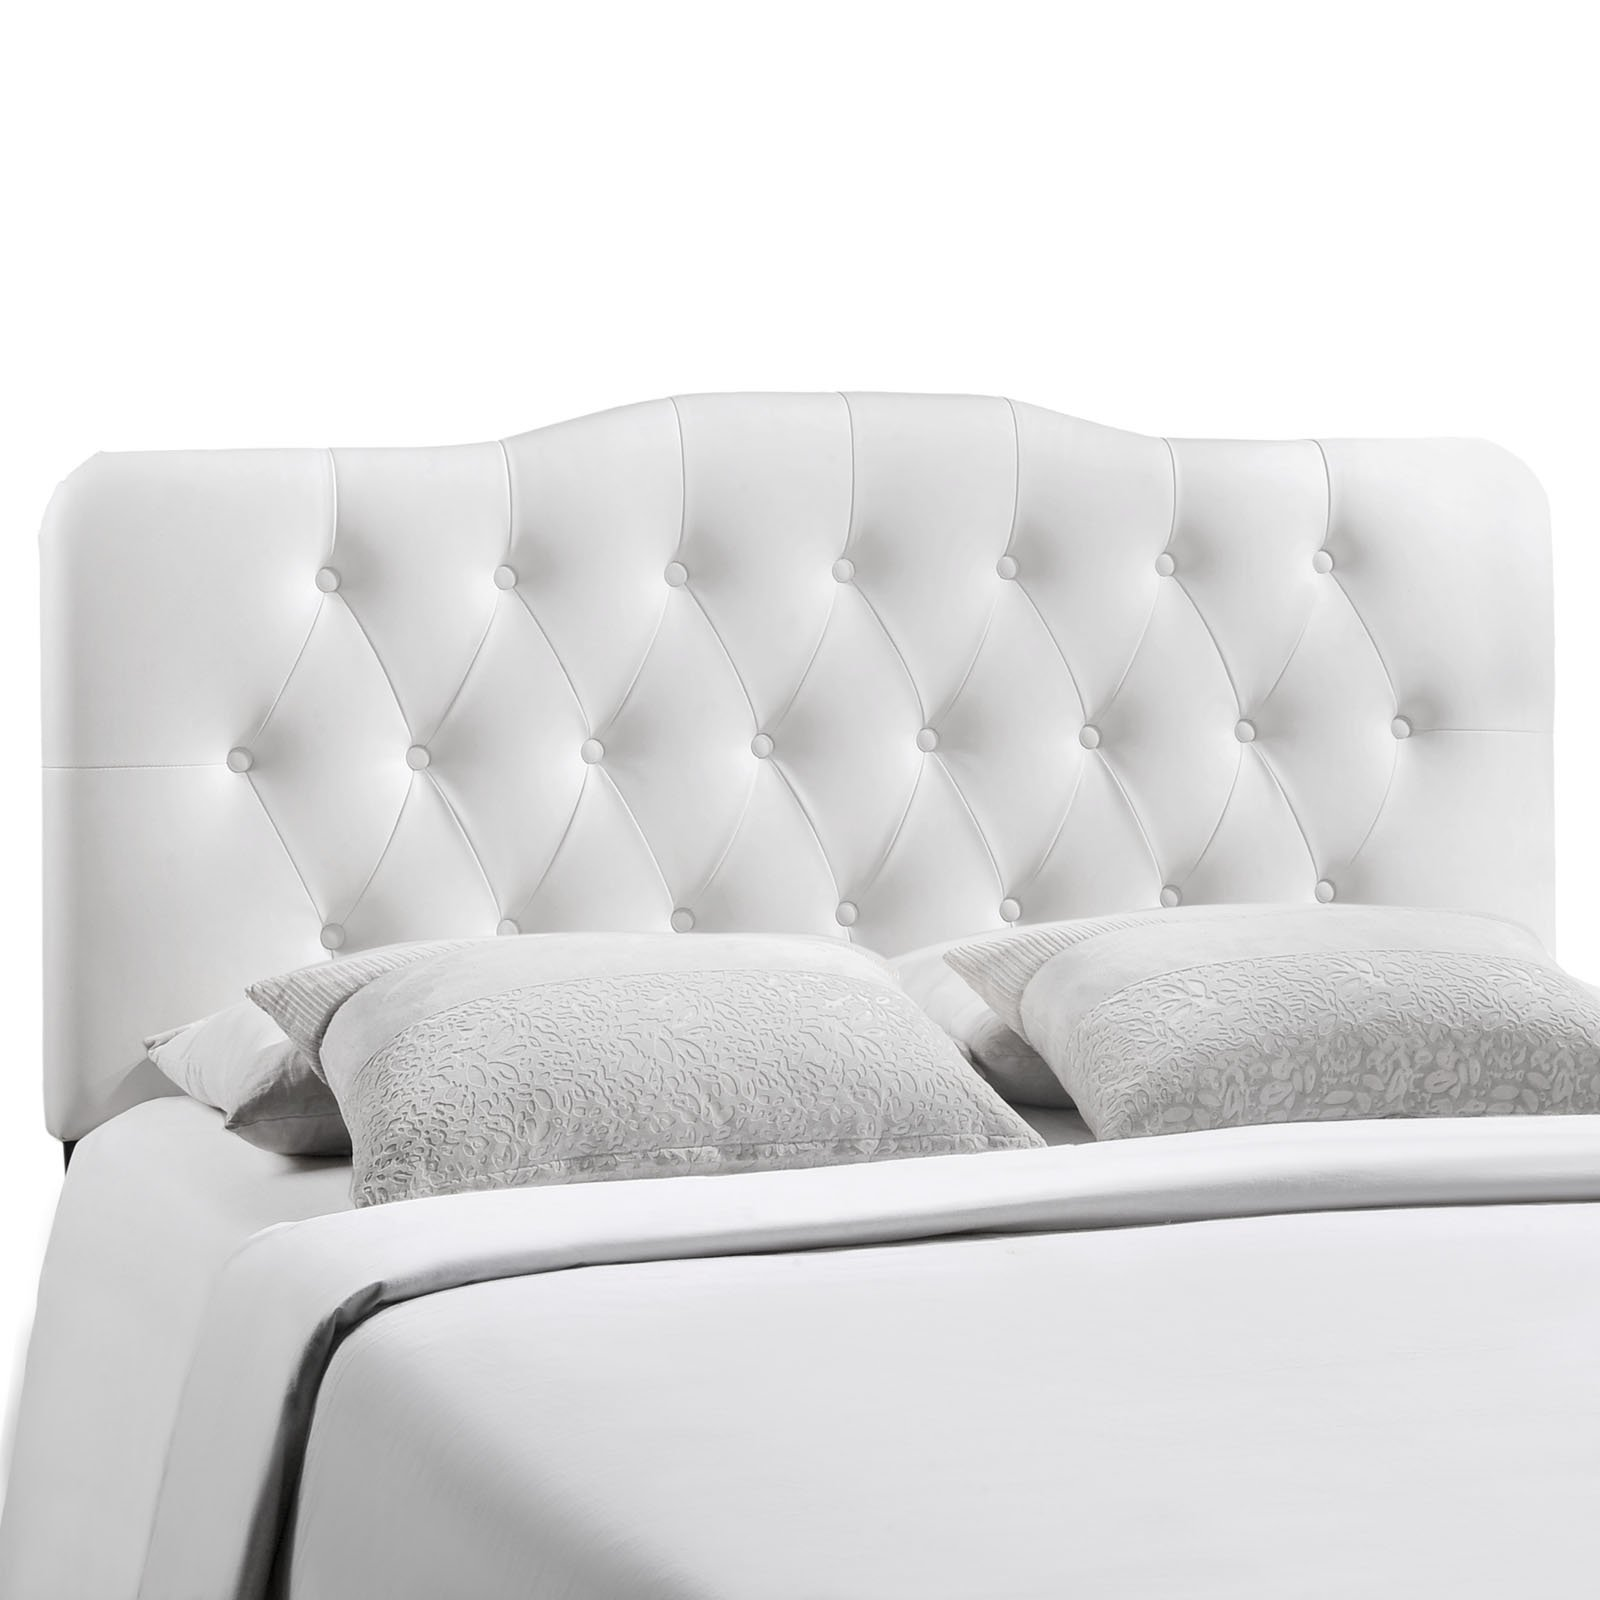 Modway Annabel King Upholstered Vinyl Headboard in White